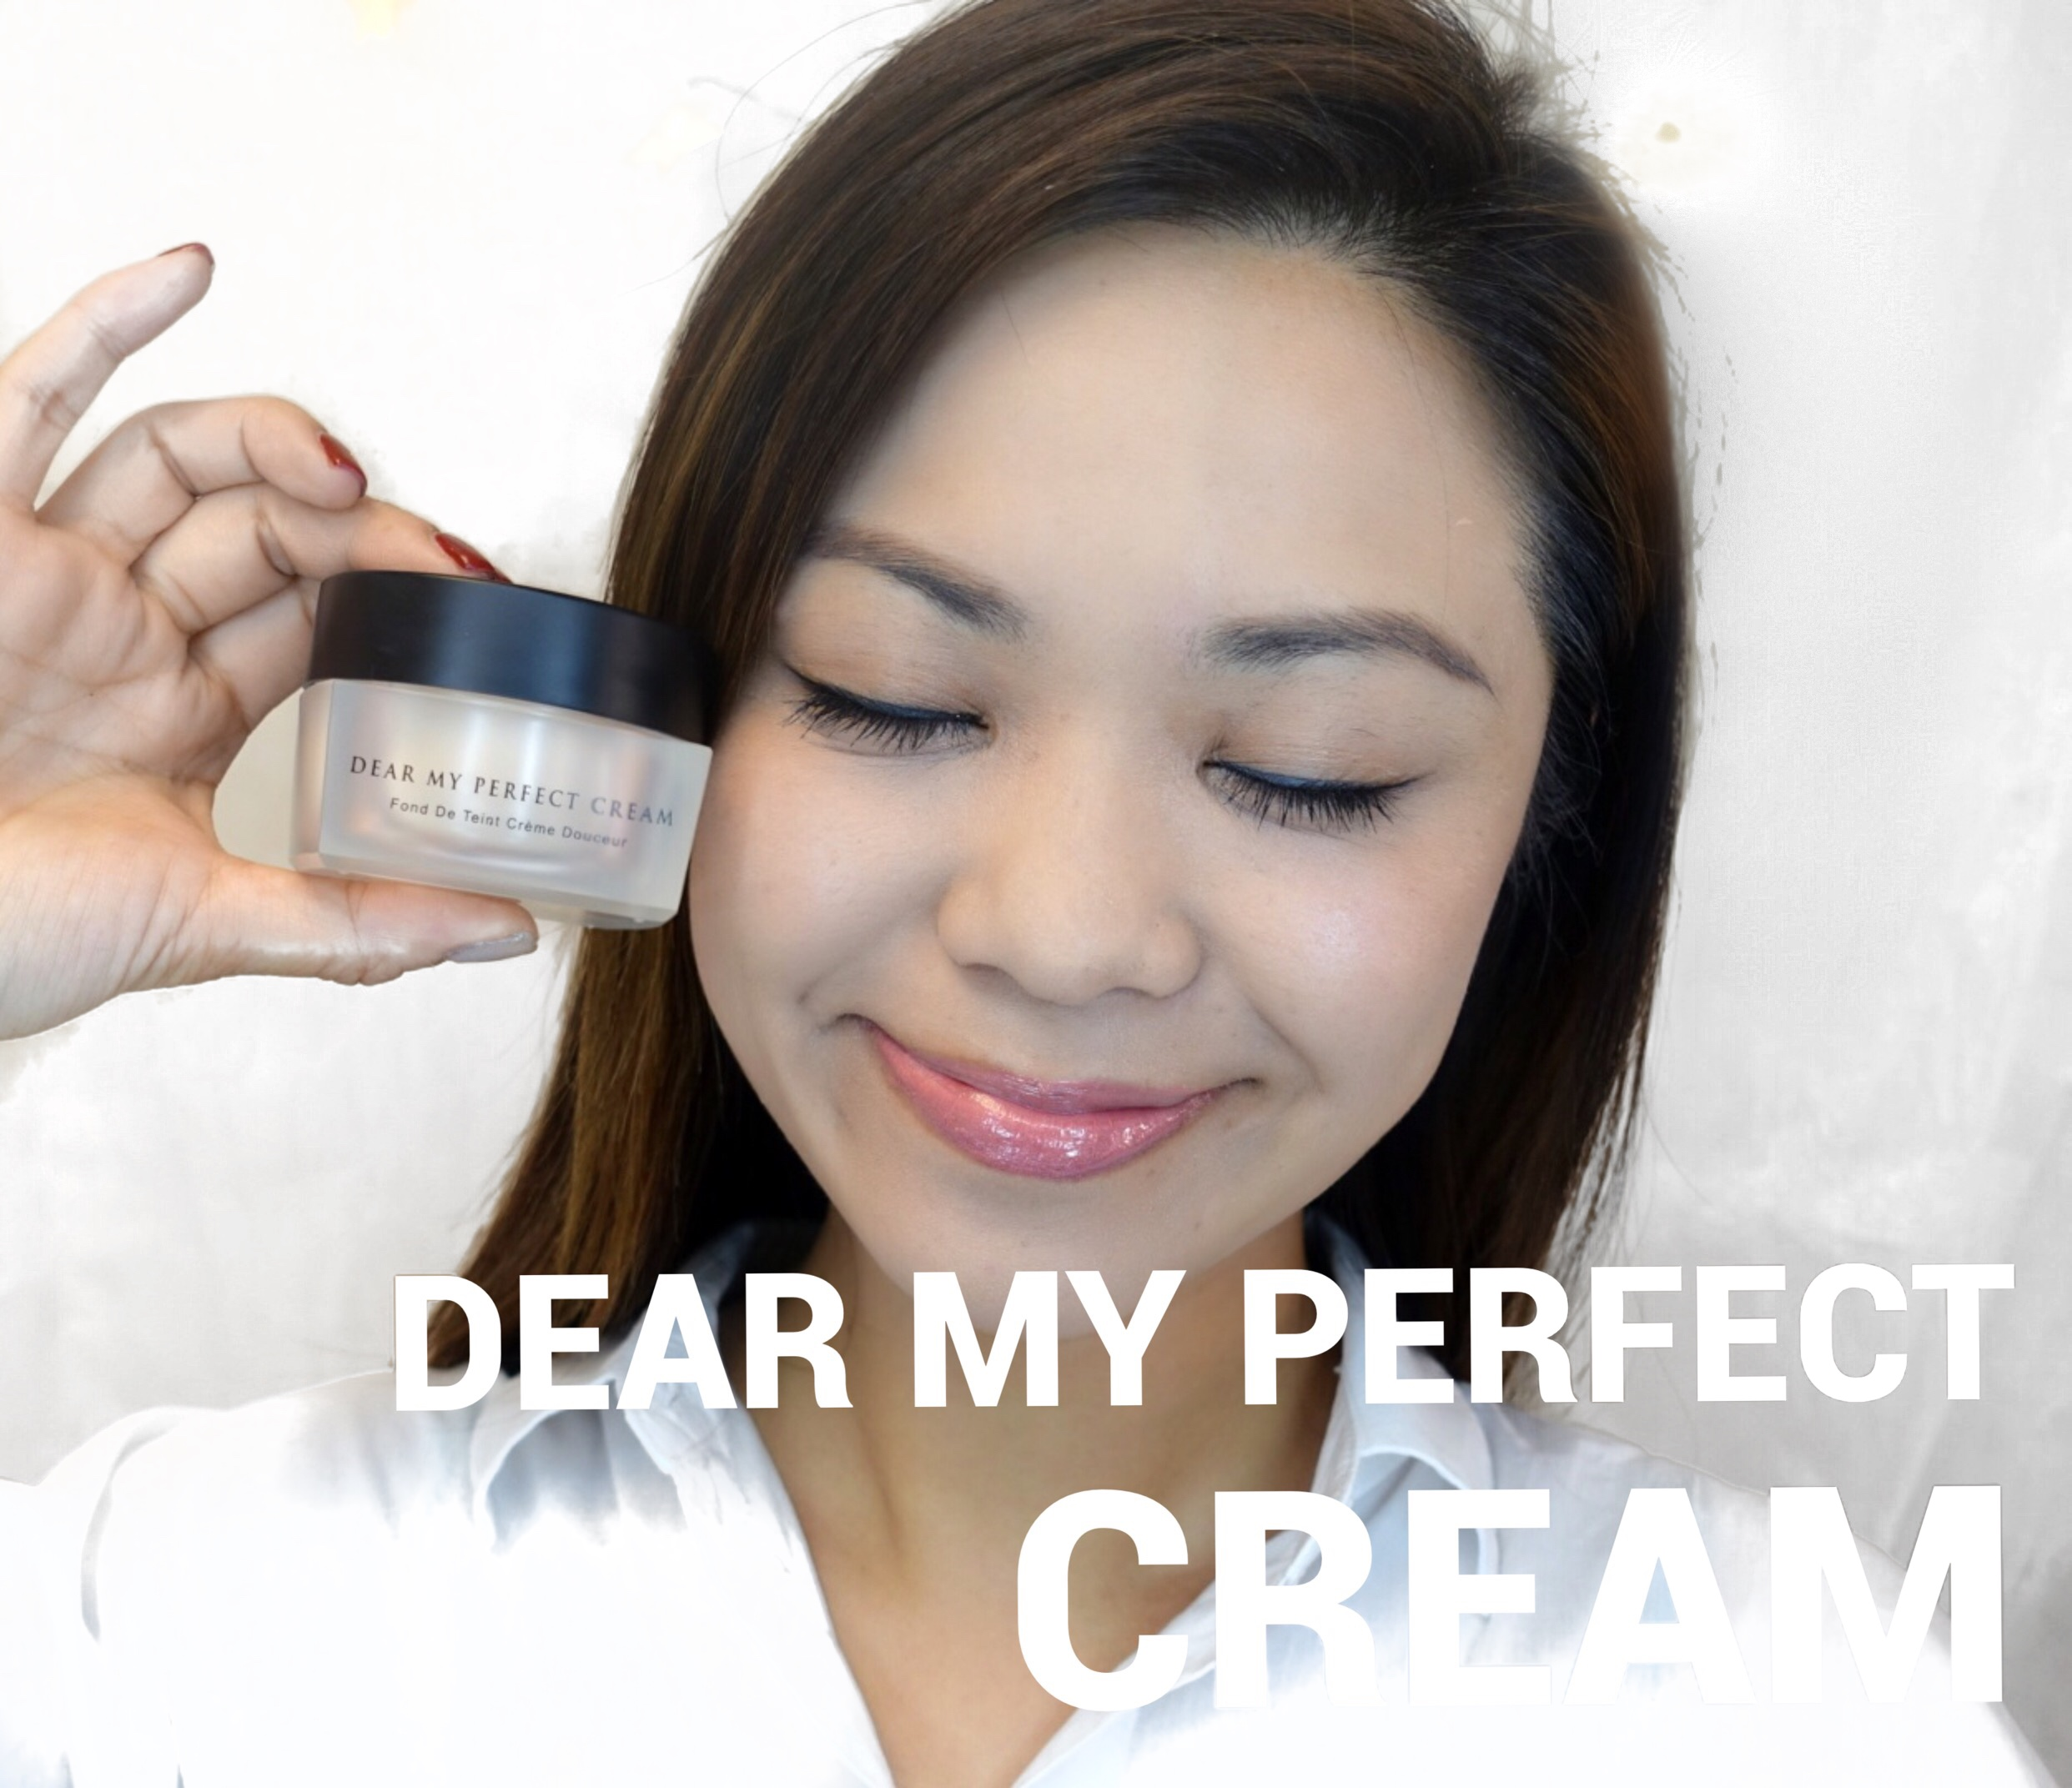 Dear MY Perfect Cream